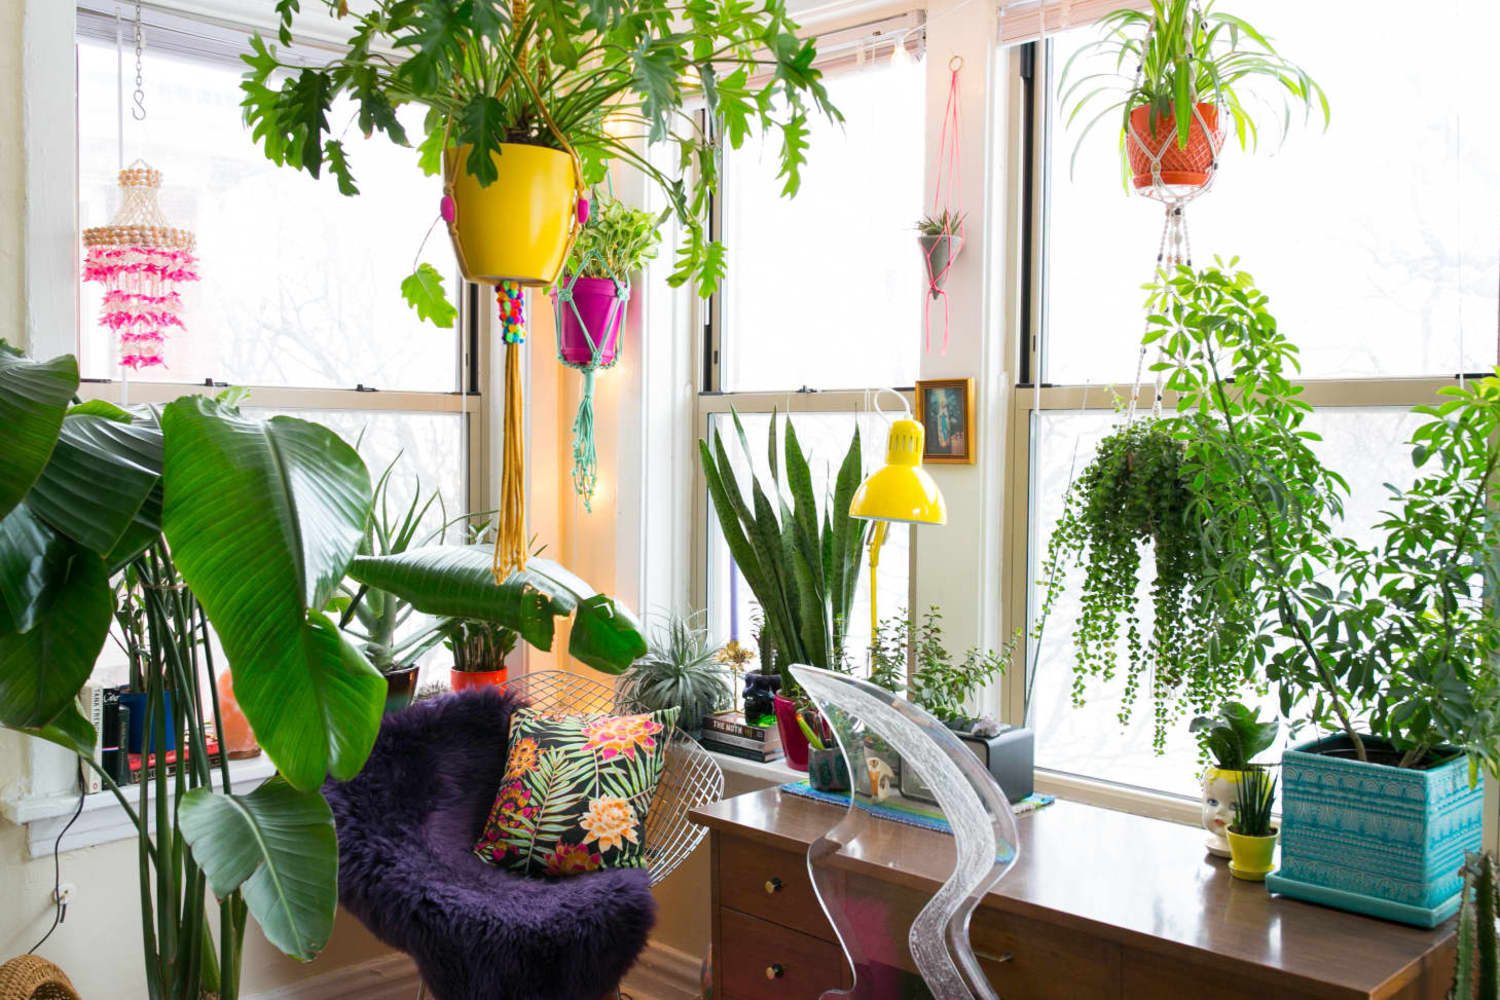 These Pinterest-Approved Plants Only Need a Glass of Water to Multiply